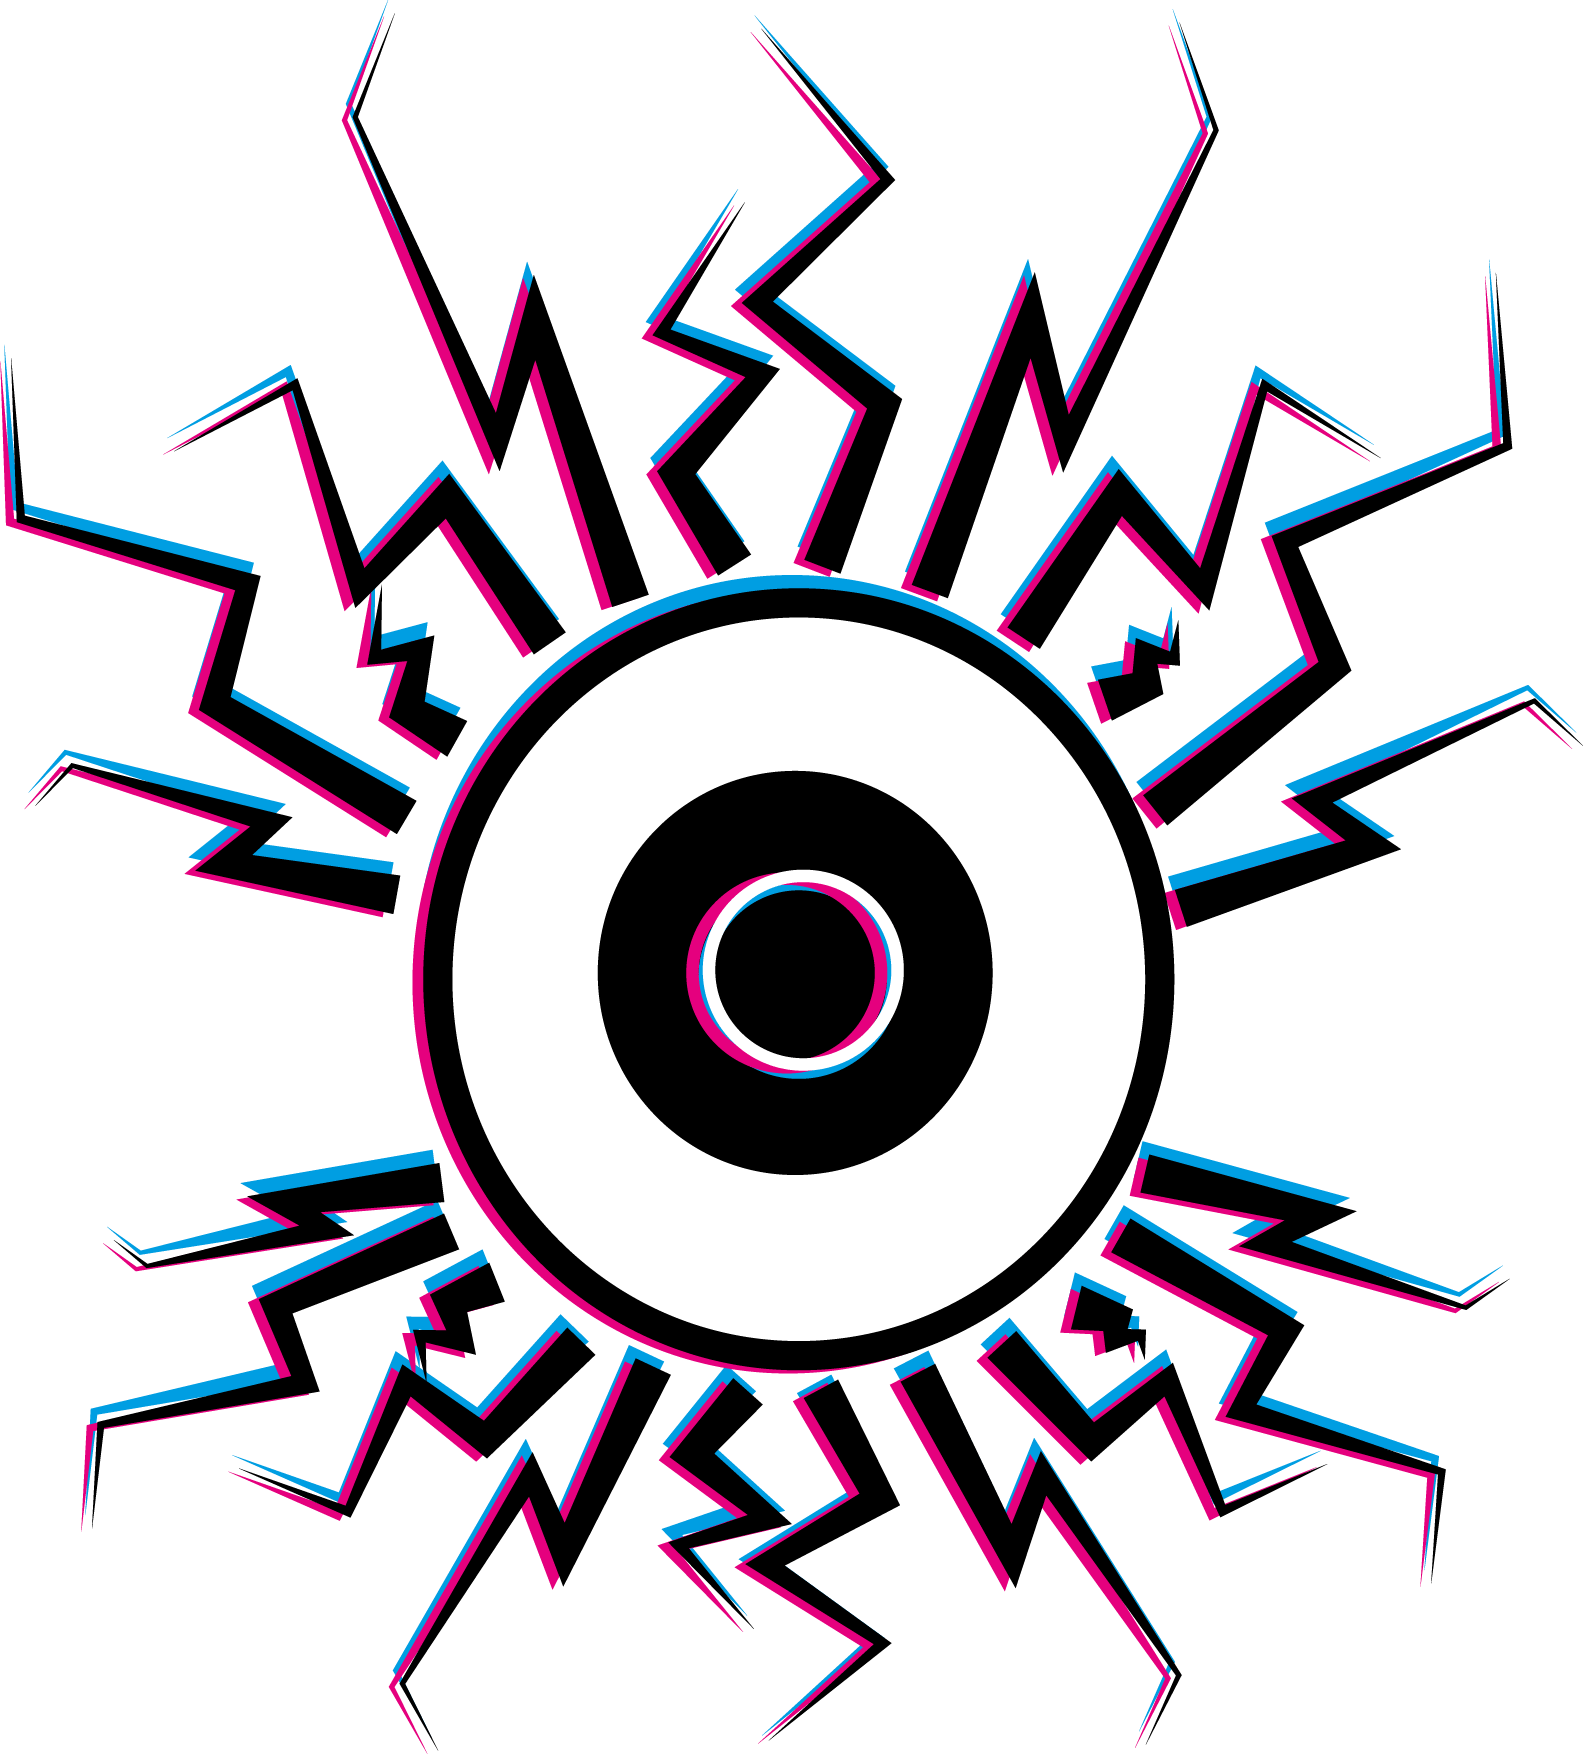 Eye flash png. Pocket poetry submission